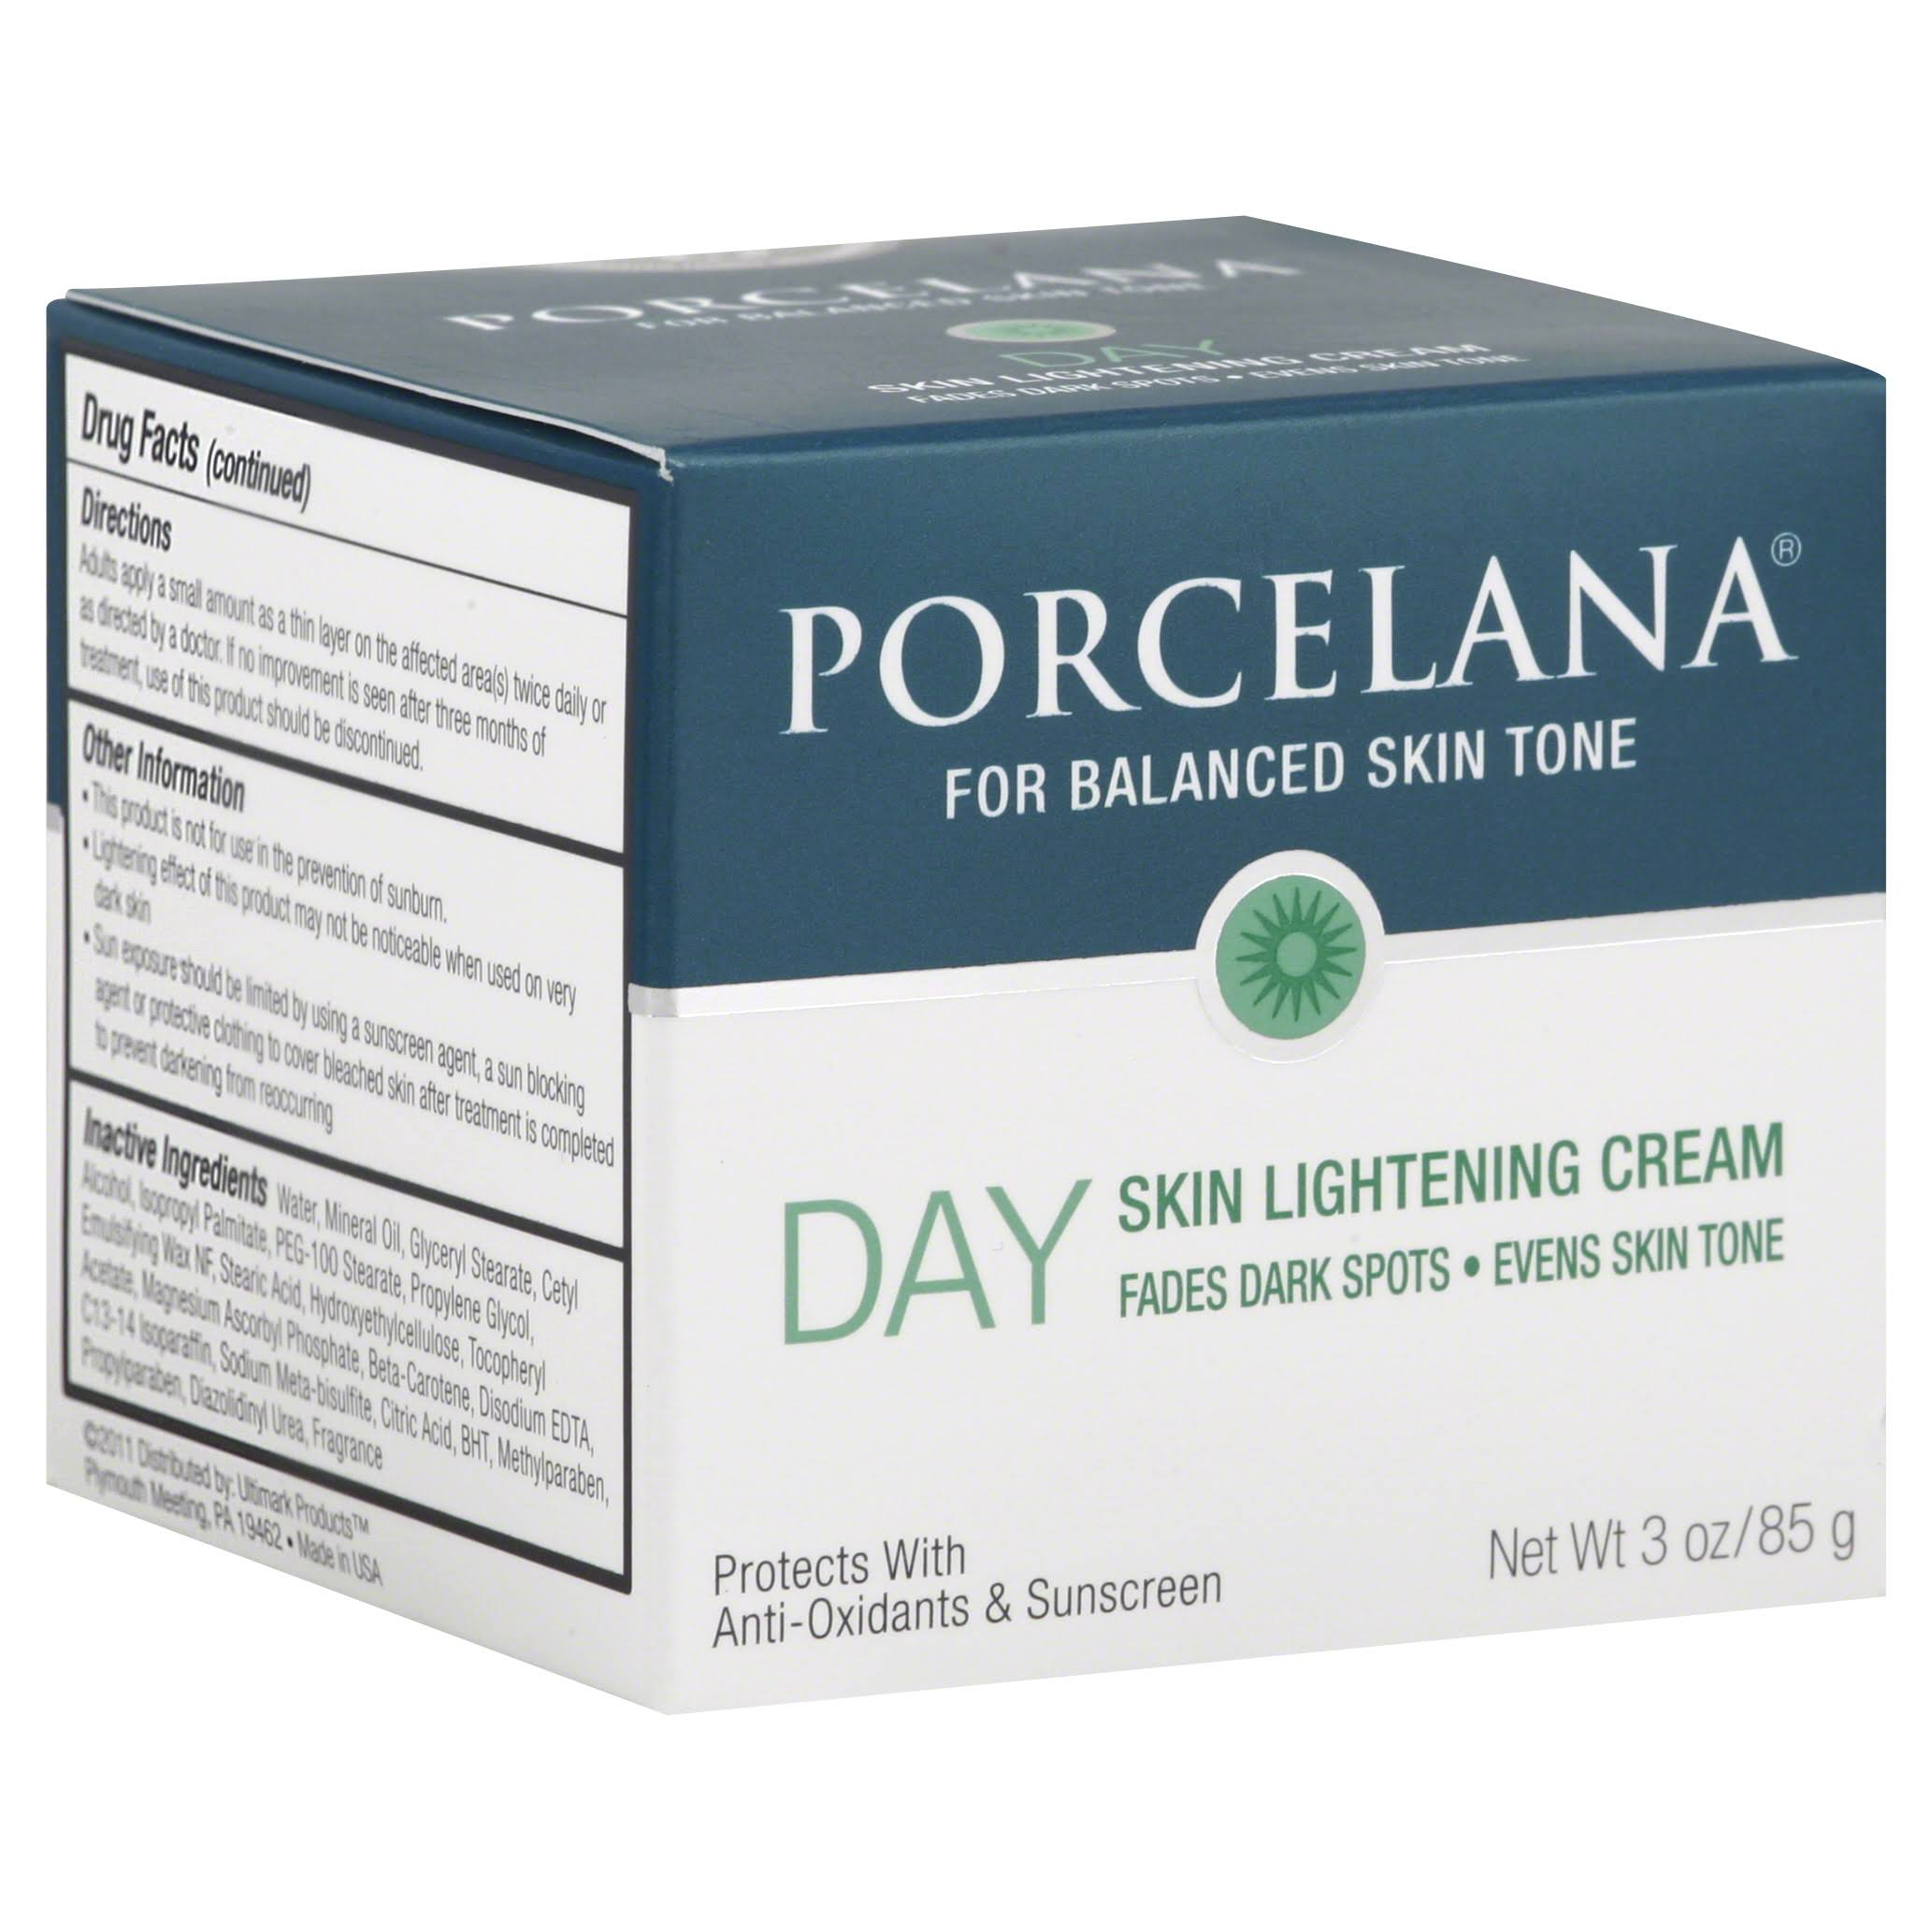 Porcelana Day Skin Lightening Cream - 3oz